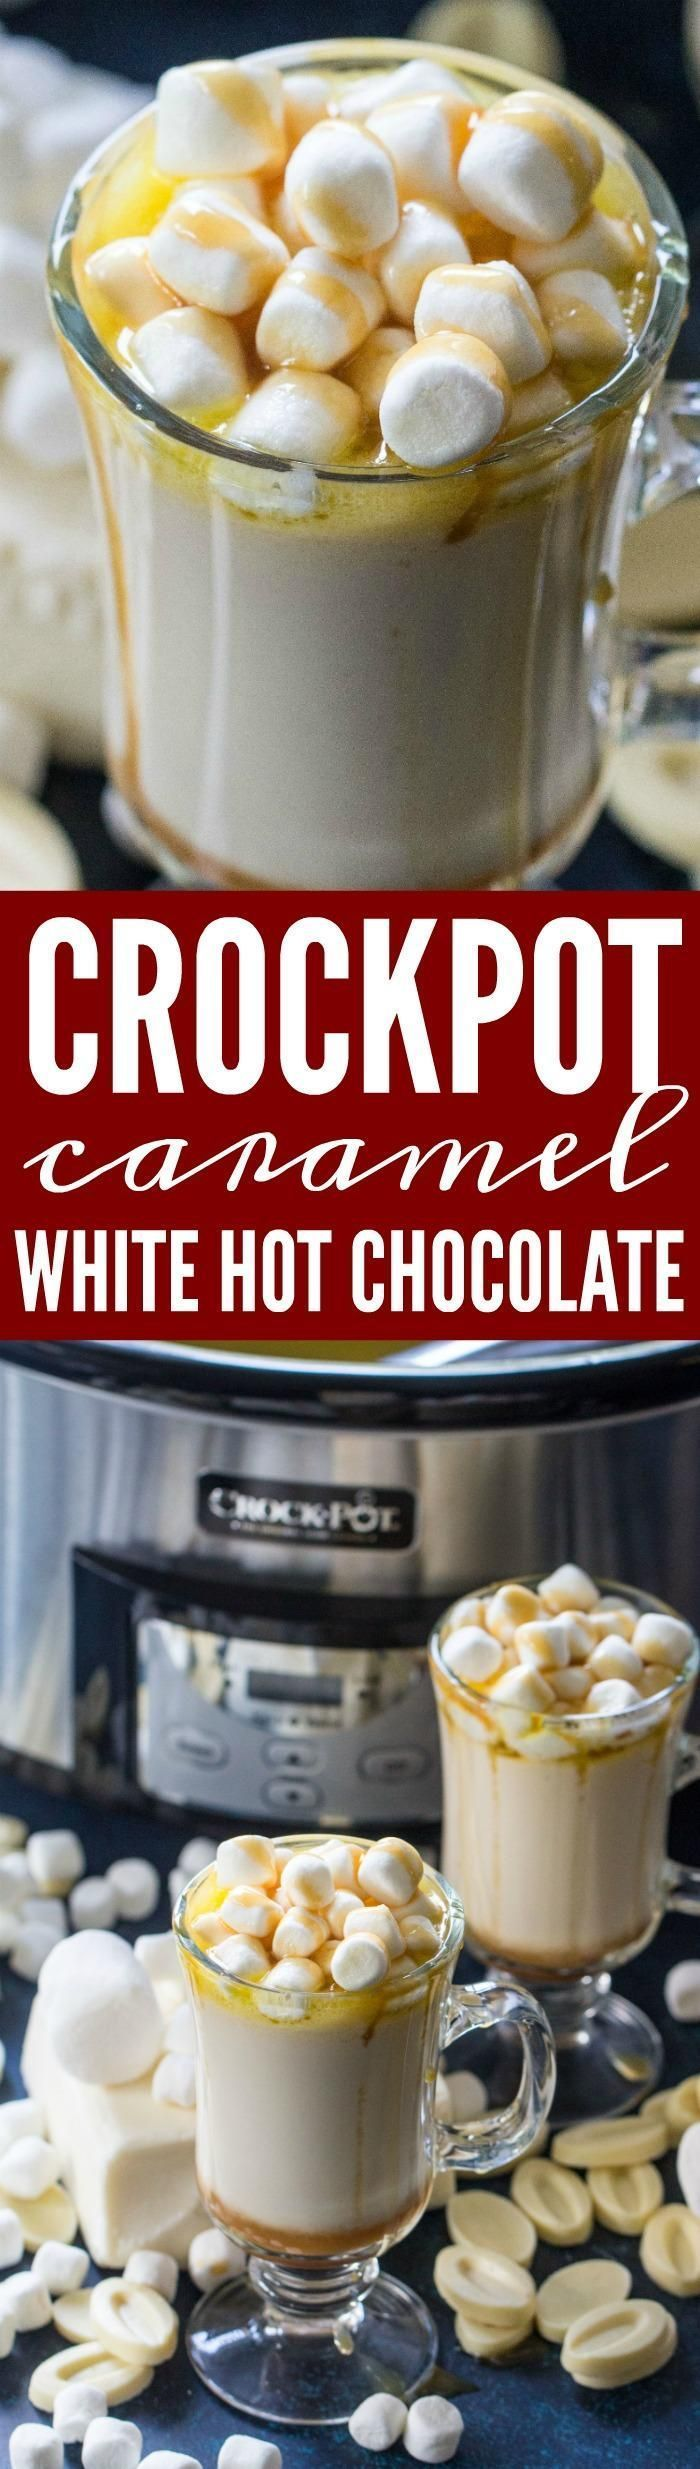 This Caramel White Hot Chocolate Recipe is the perfect Crockpot Hot Drink Recipe for cold Winter nights, Snow Days, Holidays, Thanksgiving, and Christmas!   Healthy game movie gluten free girls ideas date late carvings fight poker triva ladies guys friday burns hens saturday easy photography party boys market quotes cooking mornings ovens kids one port peanut butter cheese meat low carb suces friends veggies chocolate chips sweets vegans oats recipes weight loss buzzfeed baked chicken health…